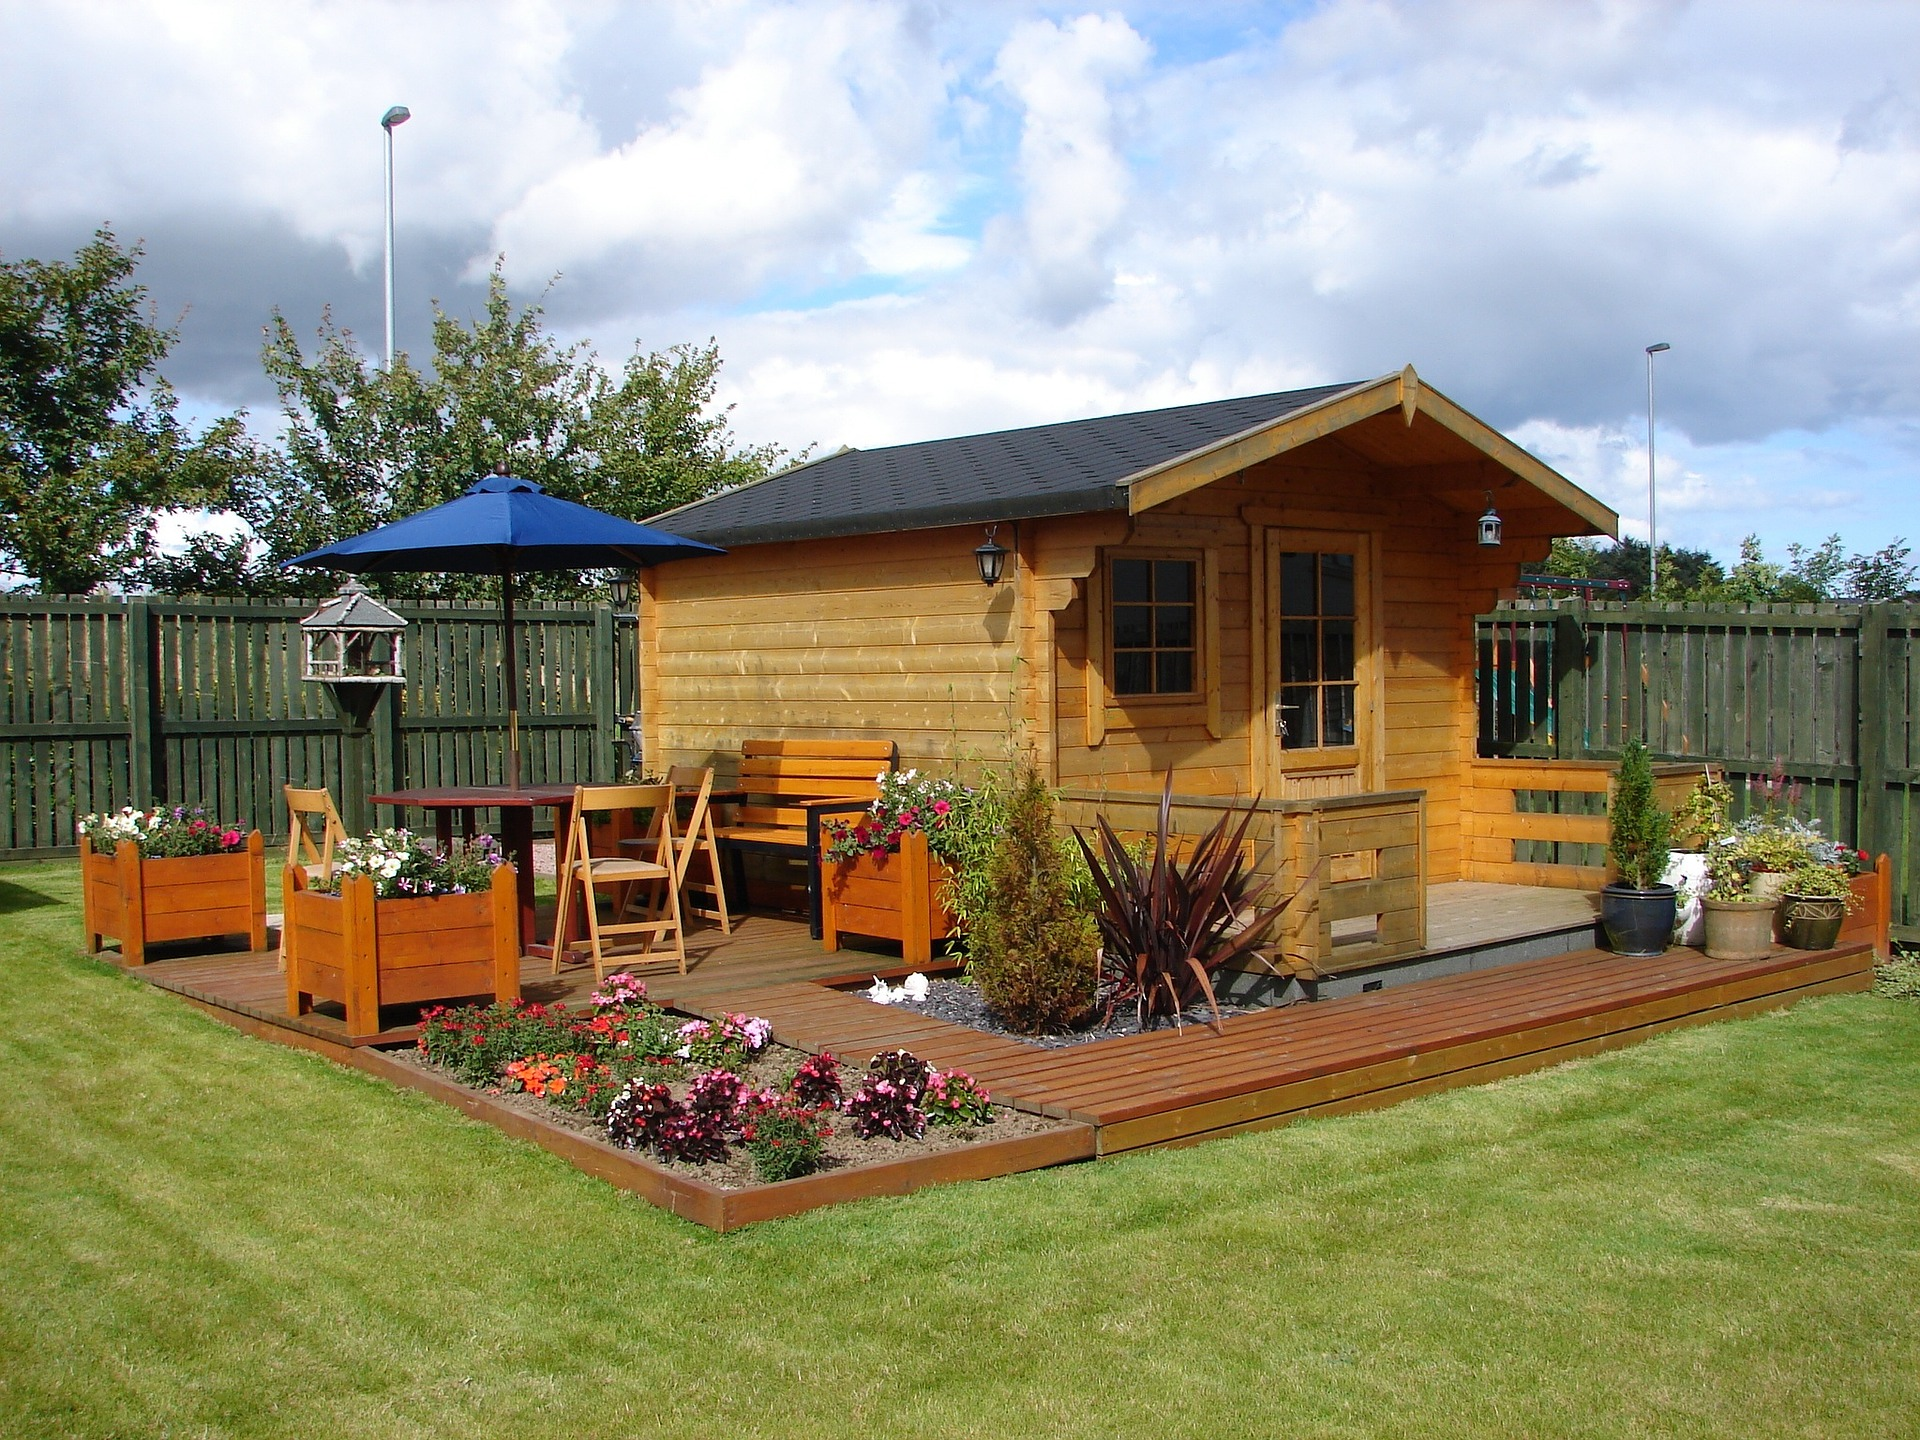 garden with wendy house